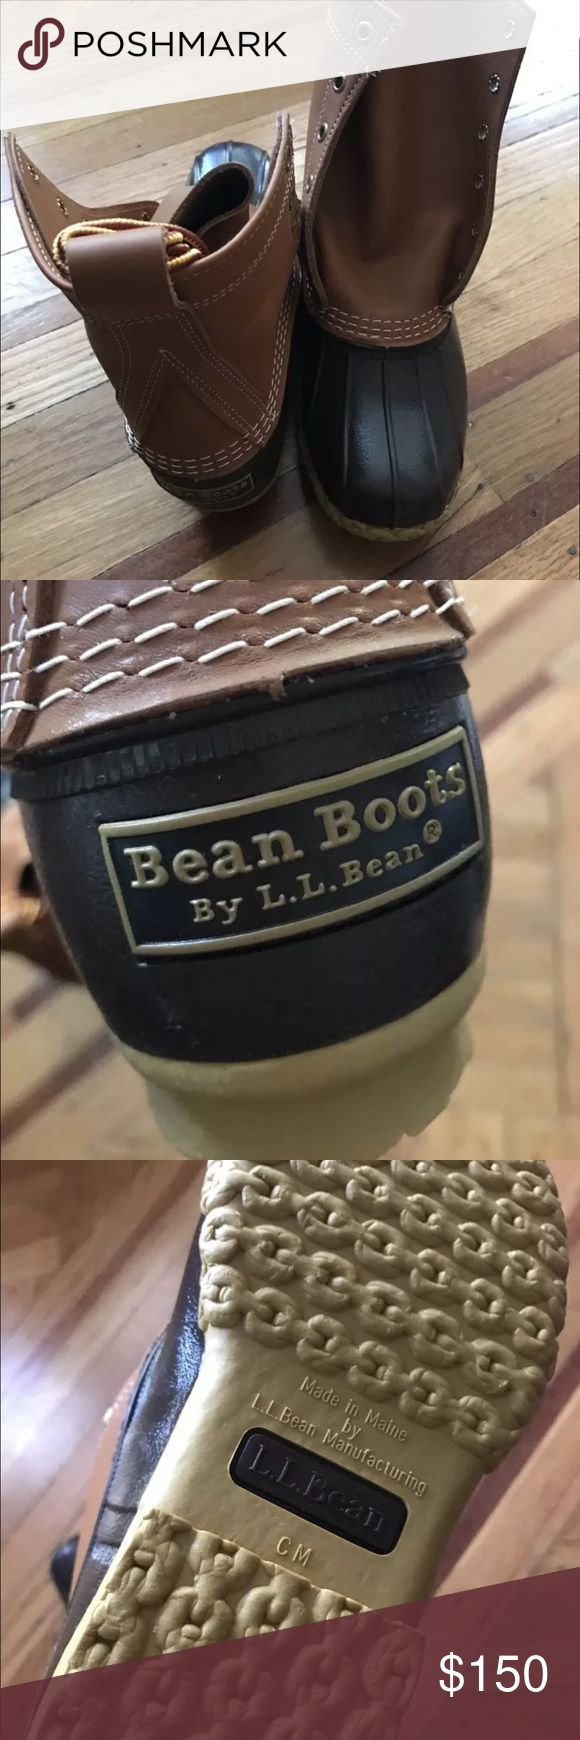 "L.L. Bean 8"" Bean Boot women's size 7. Never worn. Never worn. Will send in original shipping box. No tags - didn't ship with tags. Runs large. Normally a size 8 and sized down to 7. Tan and brown color. L.L. Bean Shoes Winter & Rain Boots"